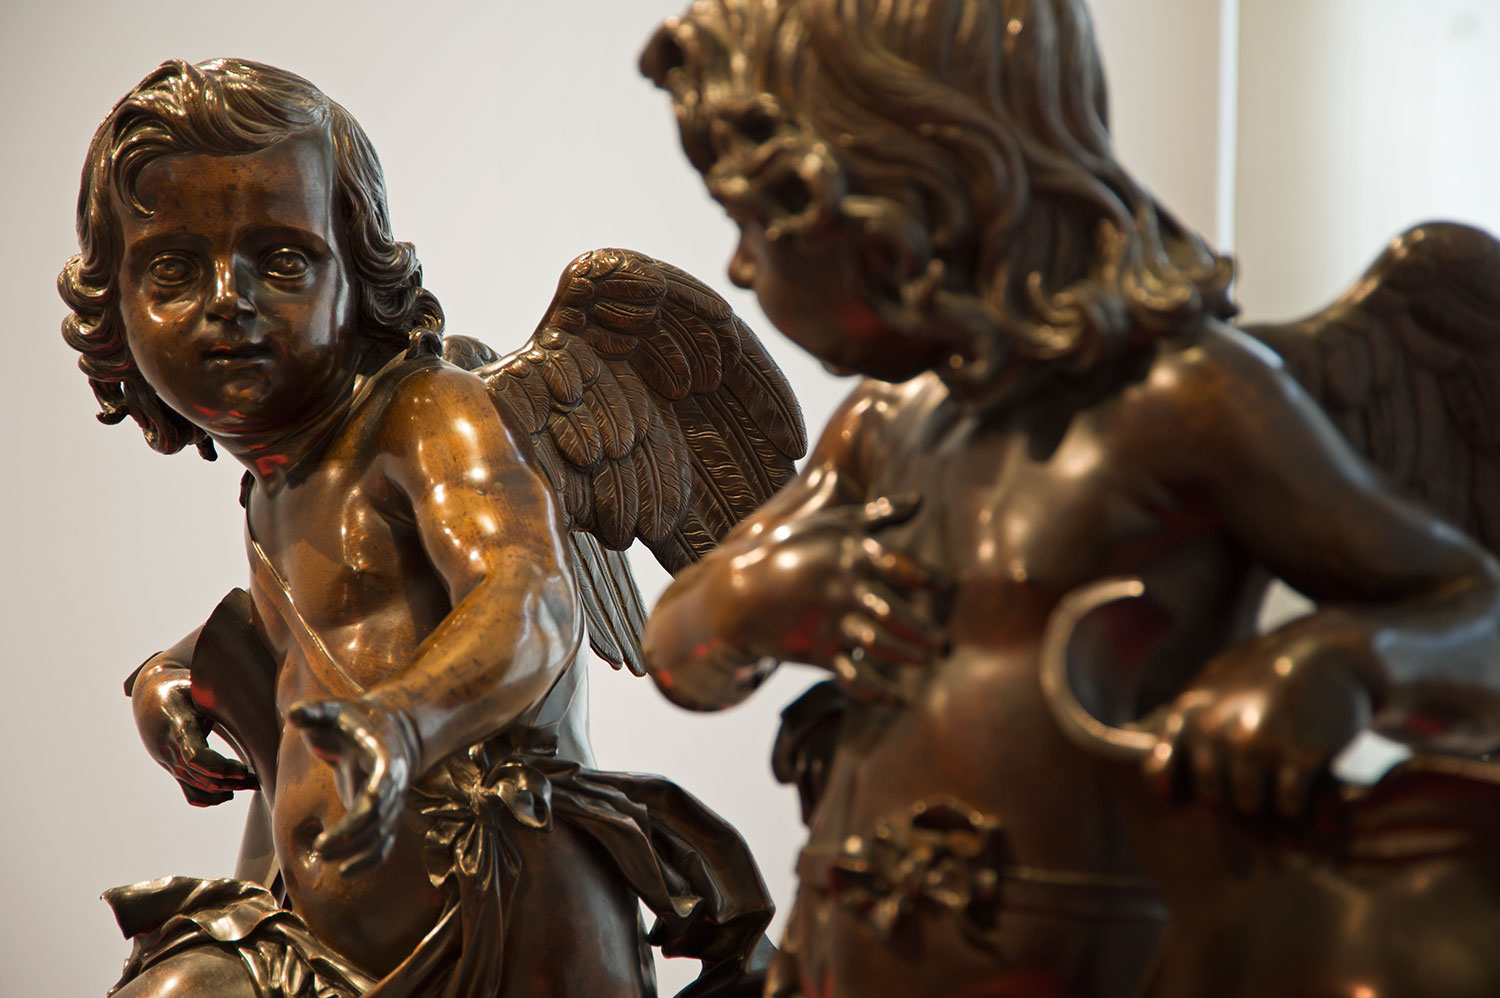 Ferdinando Tacca, 'Pair of Putti Holding Shields' (1650-5, bronze)